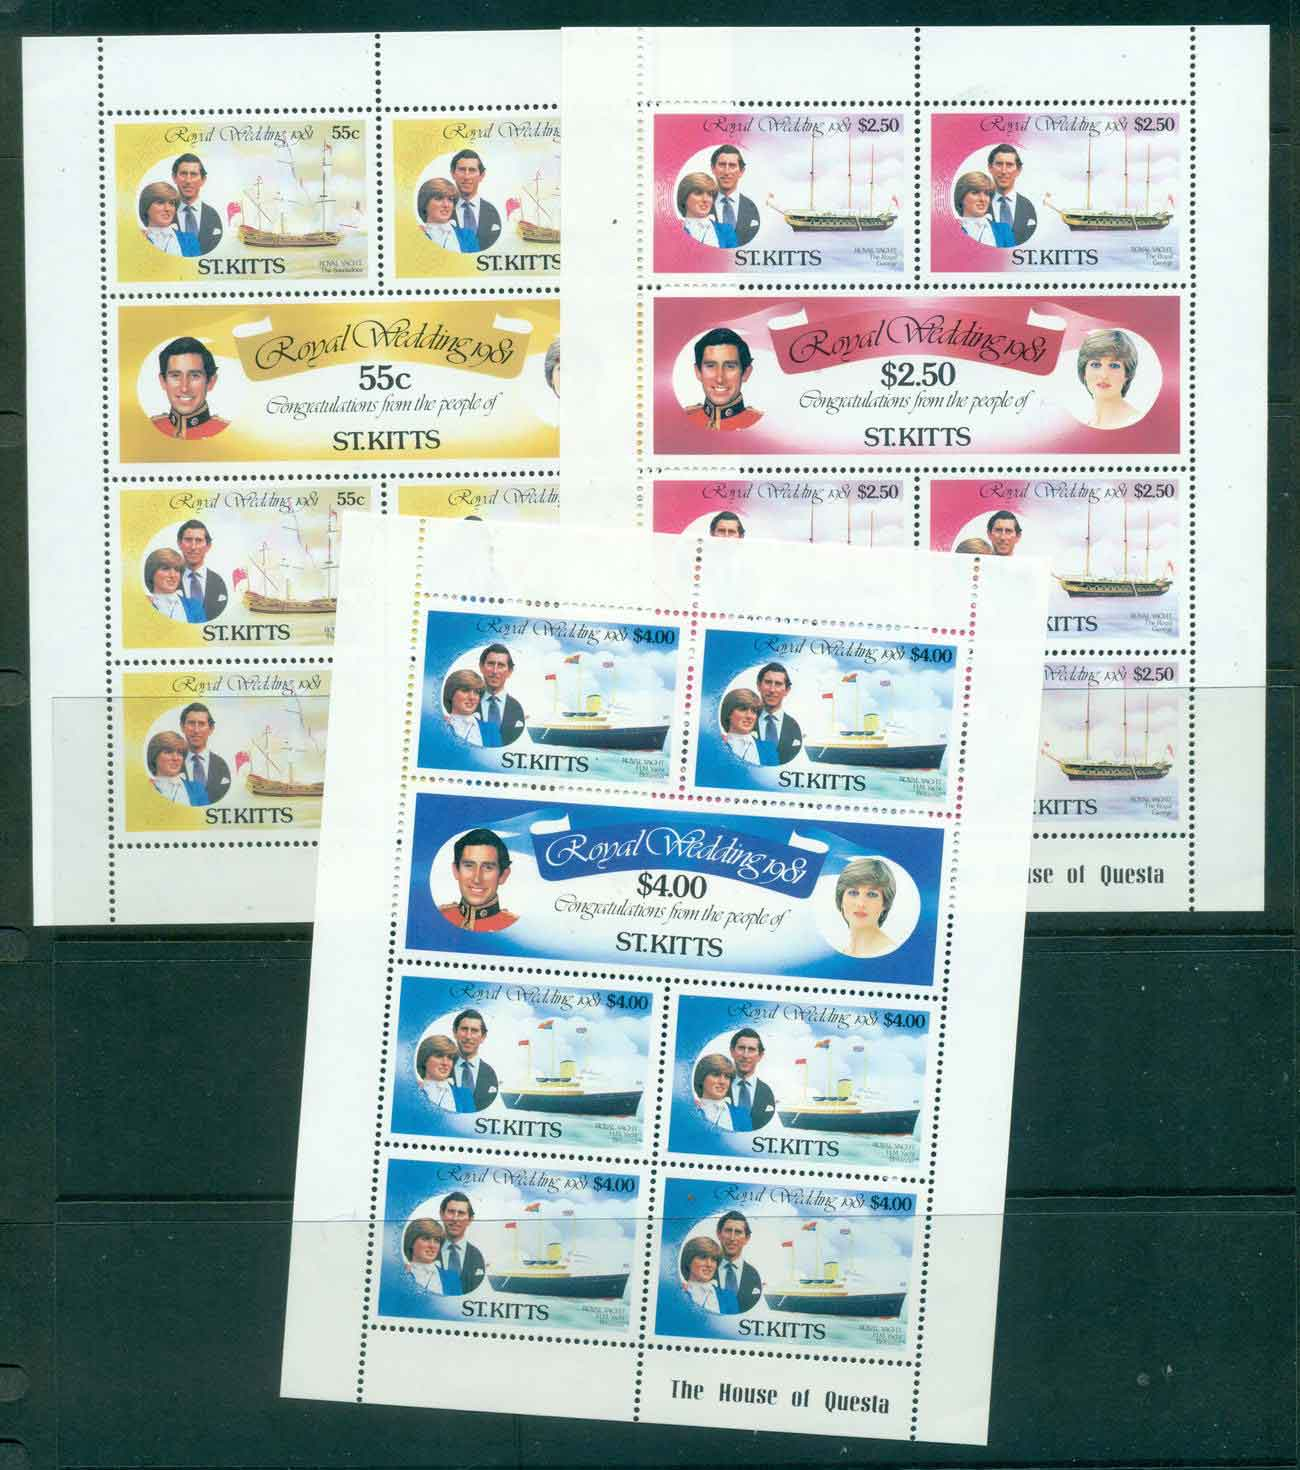 St Kitts 1981 Charles & Diana Wedding 3x Sheetlets MUH Lot45209